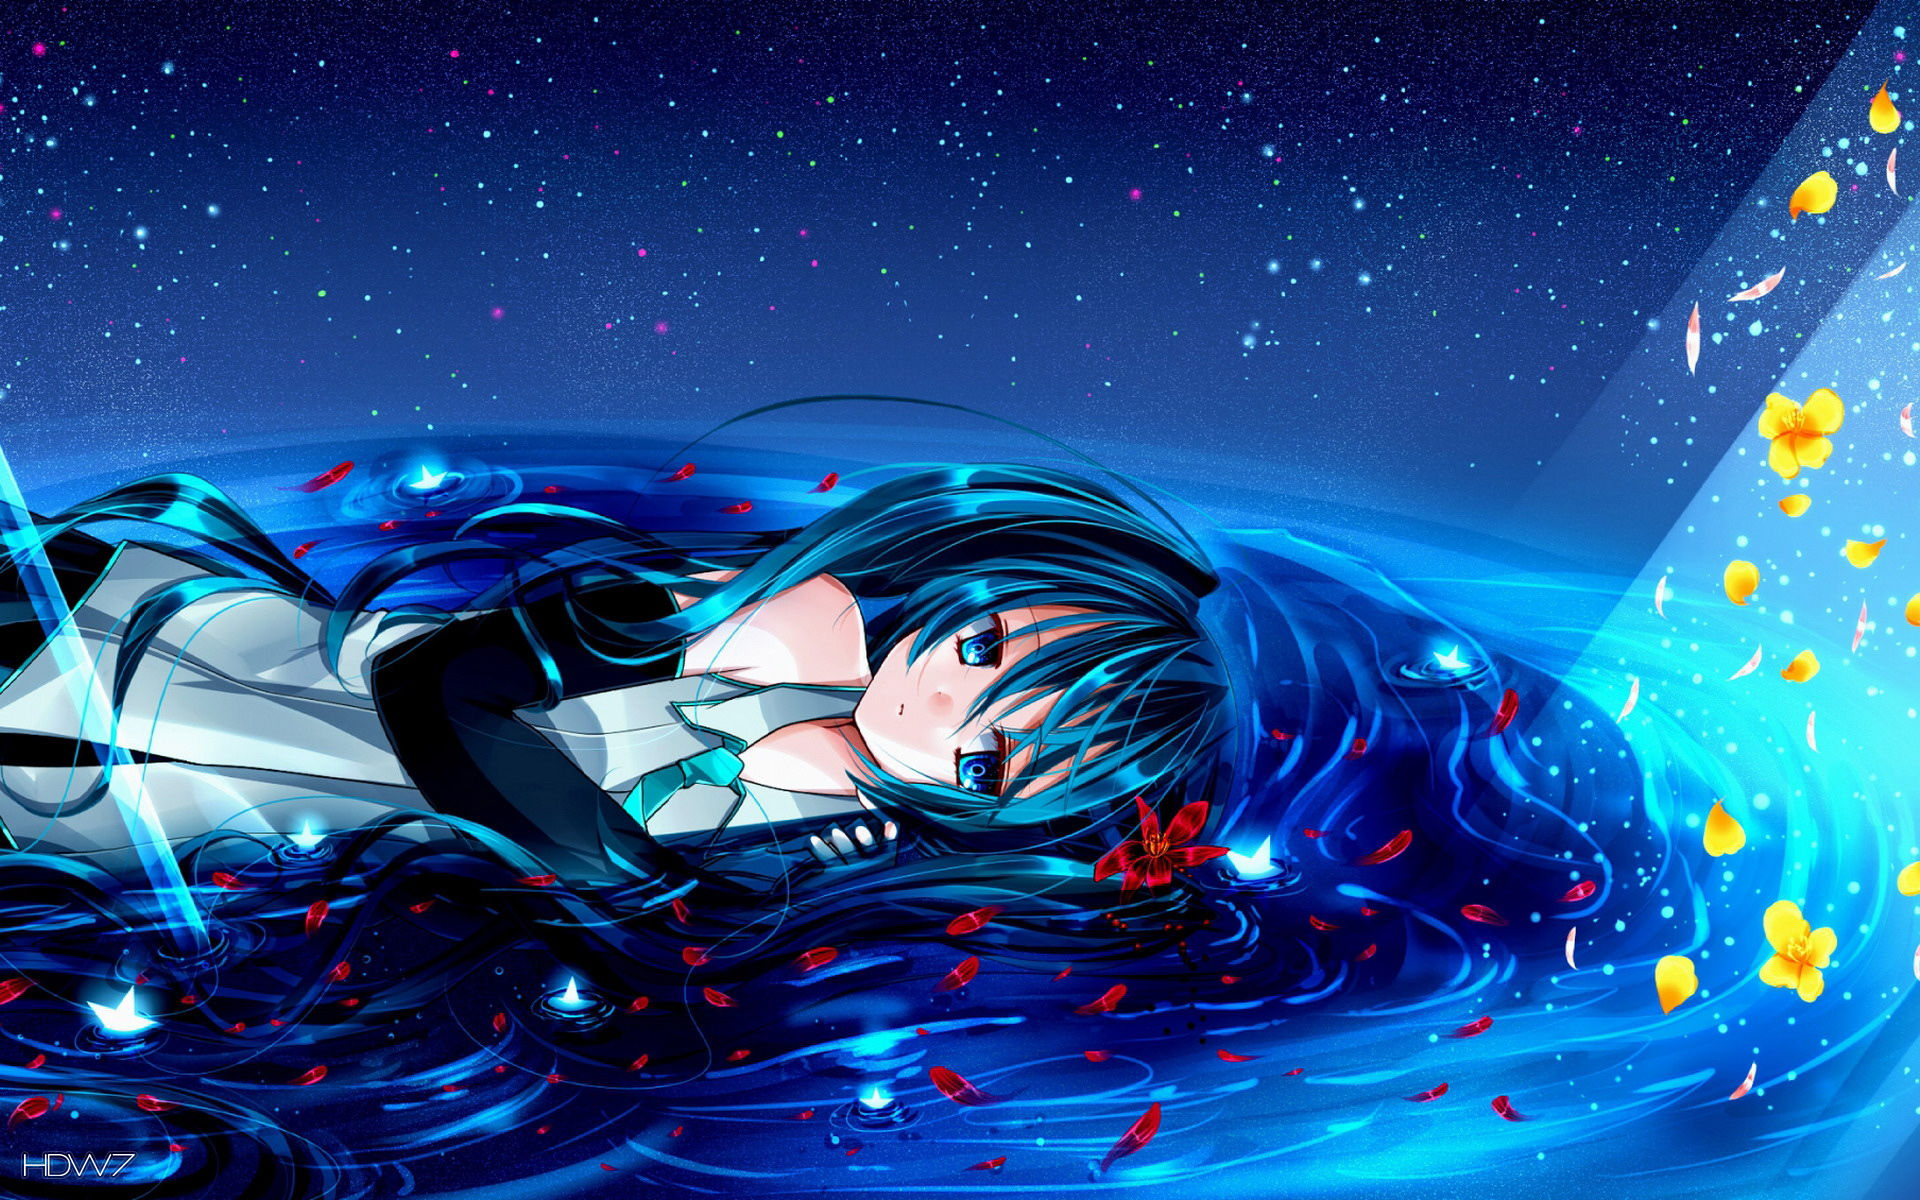 wallpaper anime girl under - photo #12